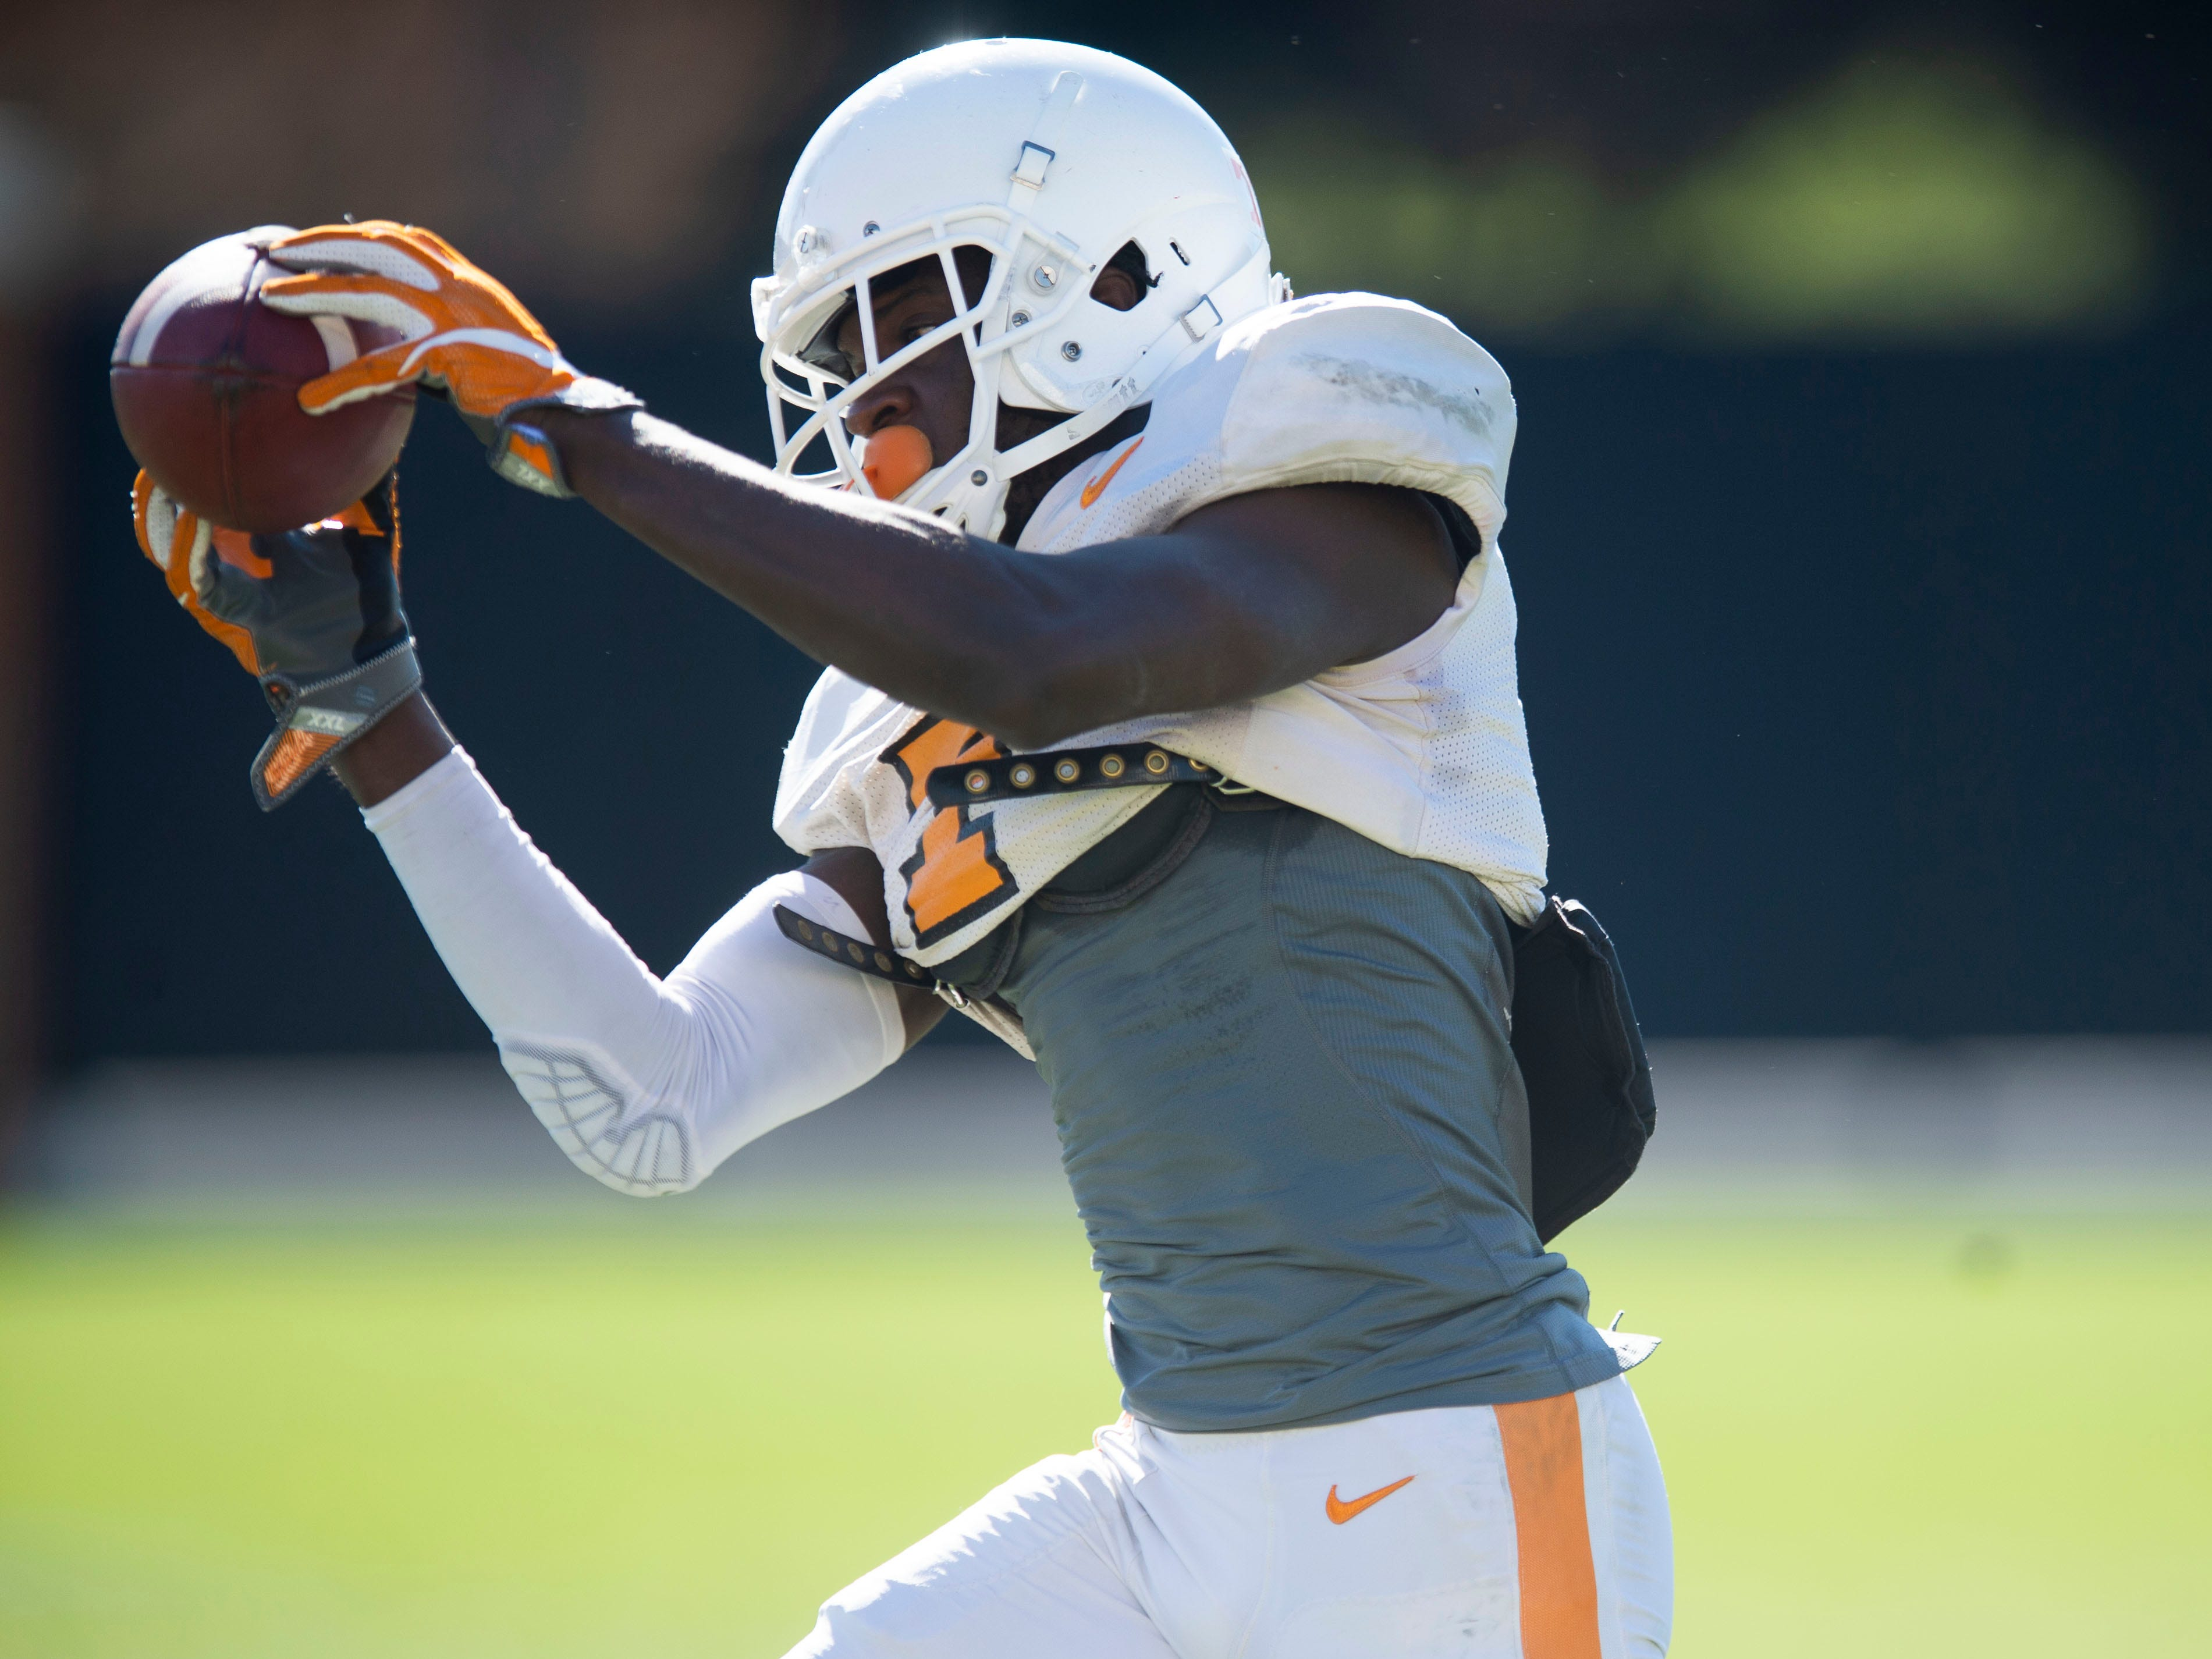 Tennessee wide receiver Brandon Johnson (7) during  practice on Friday, March 15, 2019.